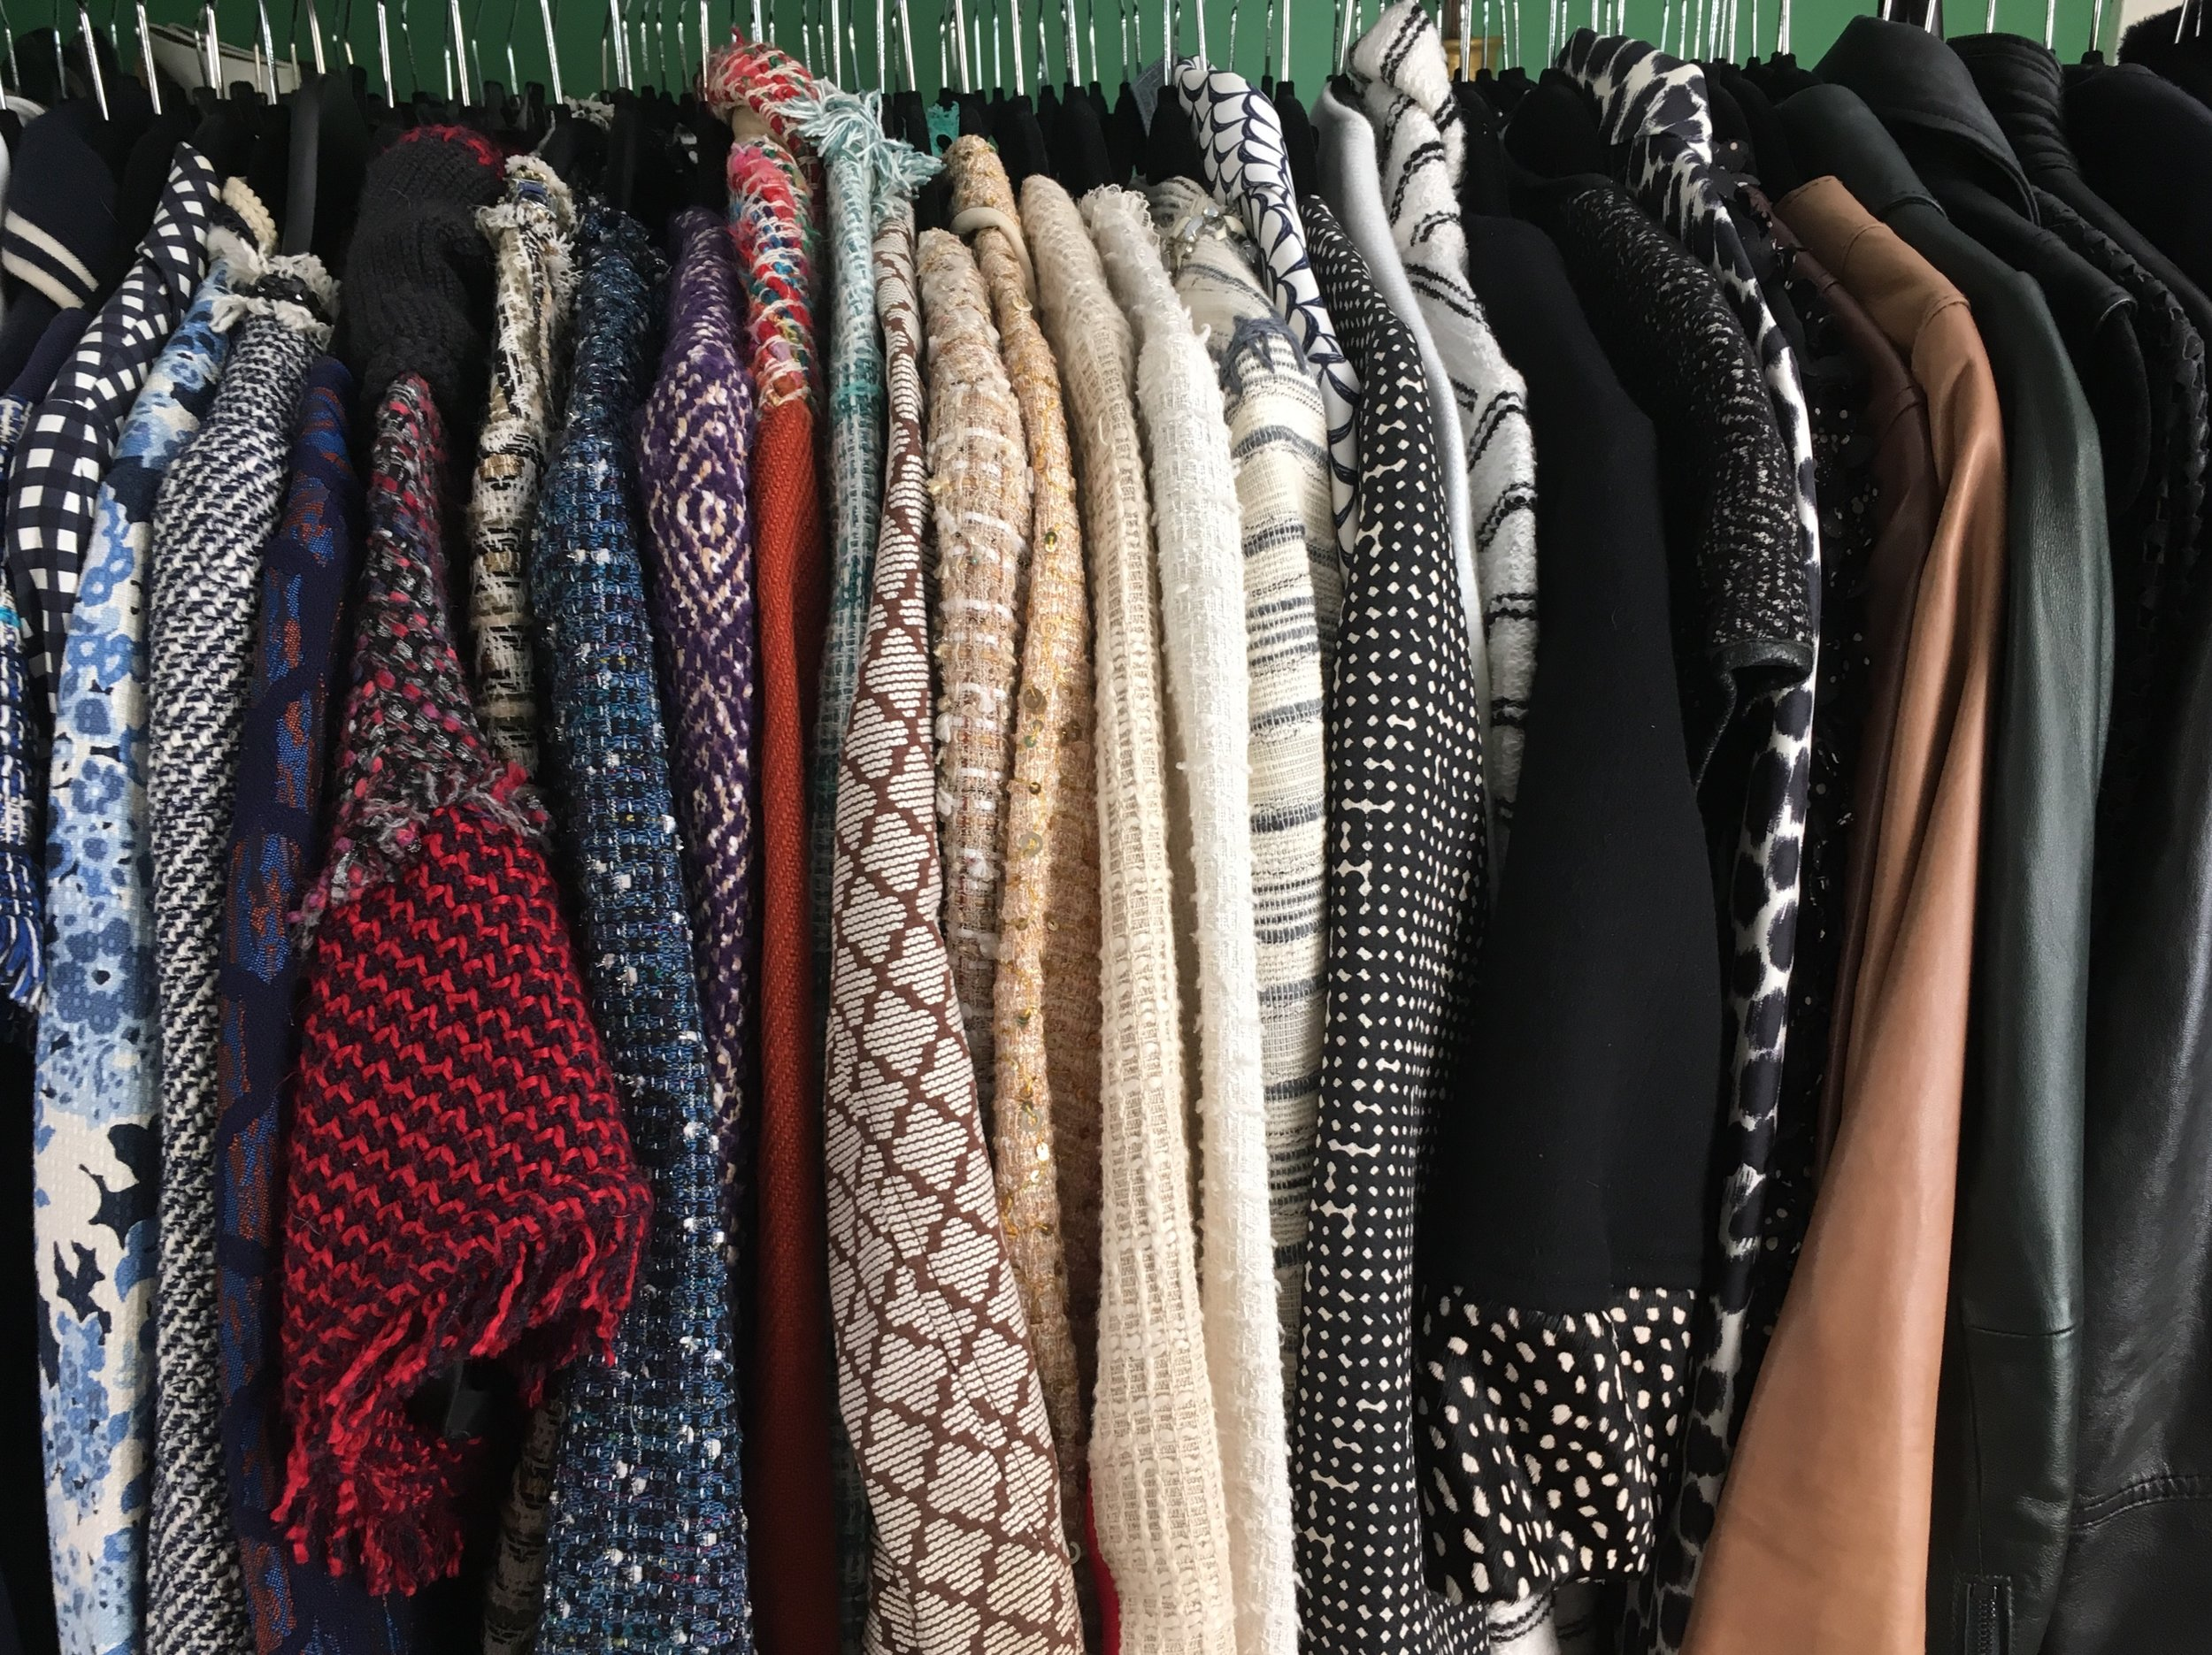 Hi, my name is Kate and I have a tweed jacket problem.